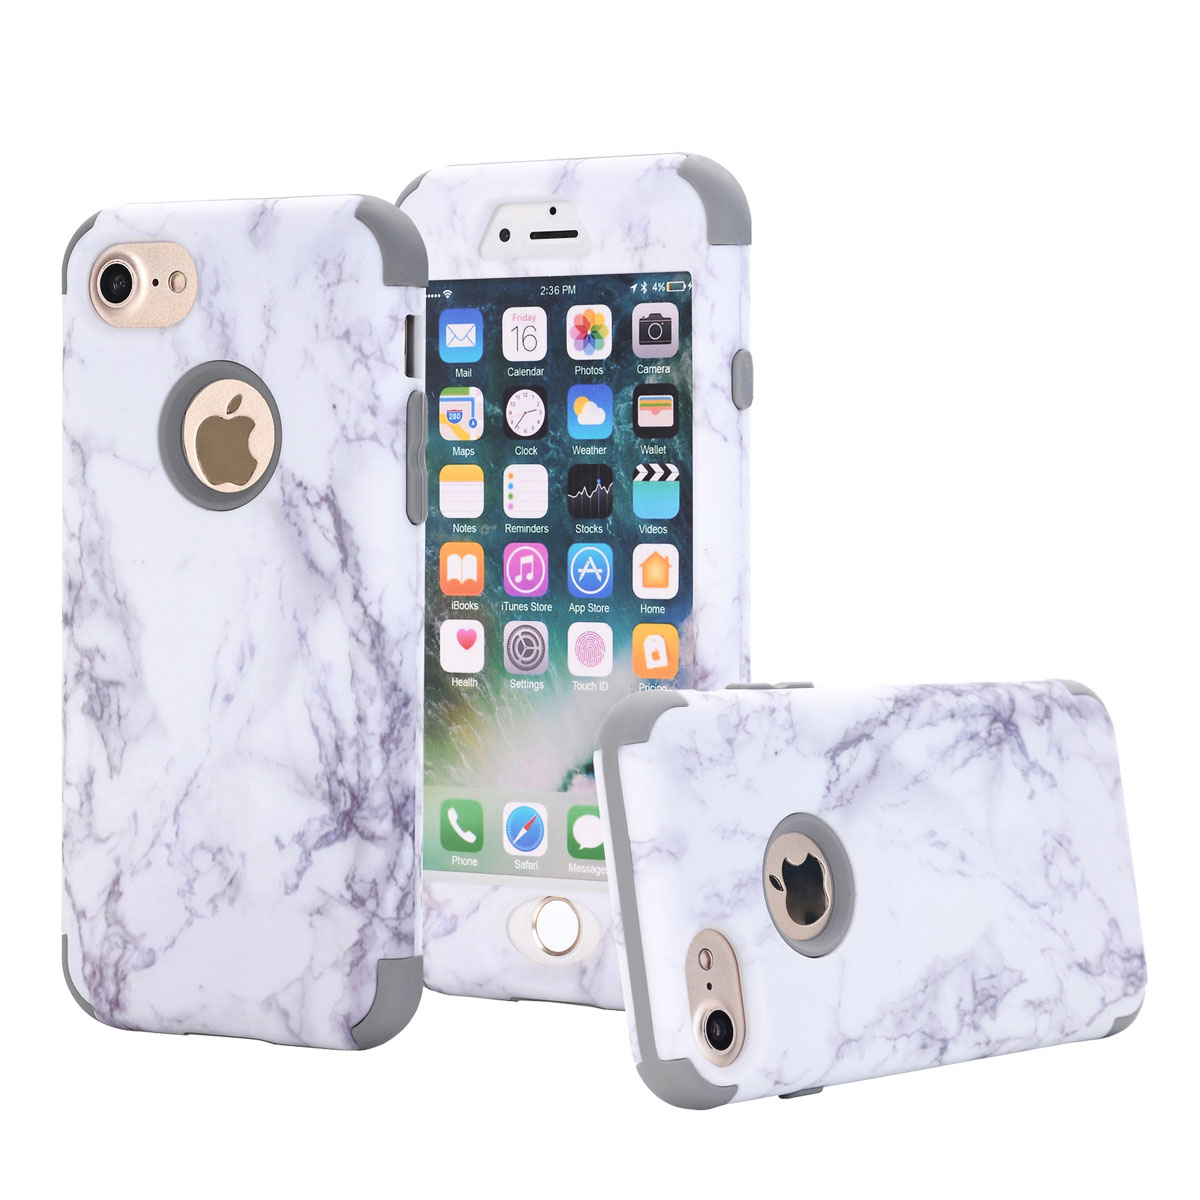 Protective Marble Iphone S Case